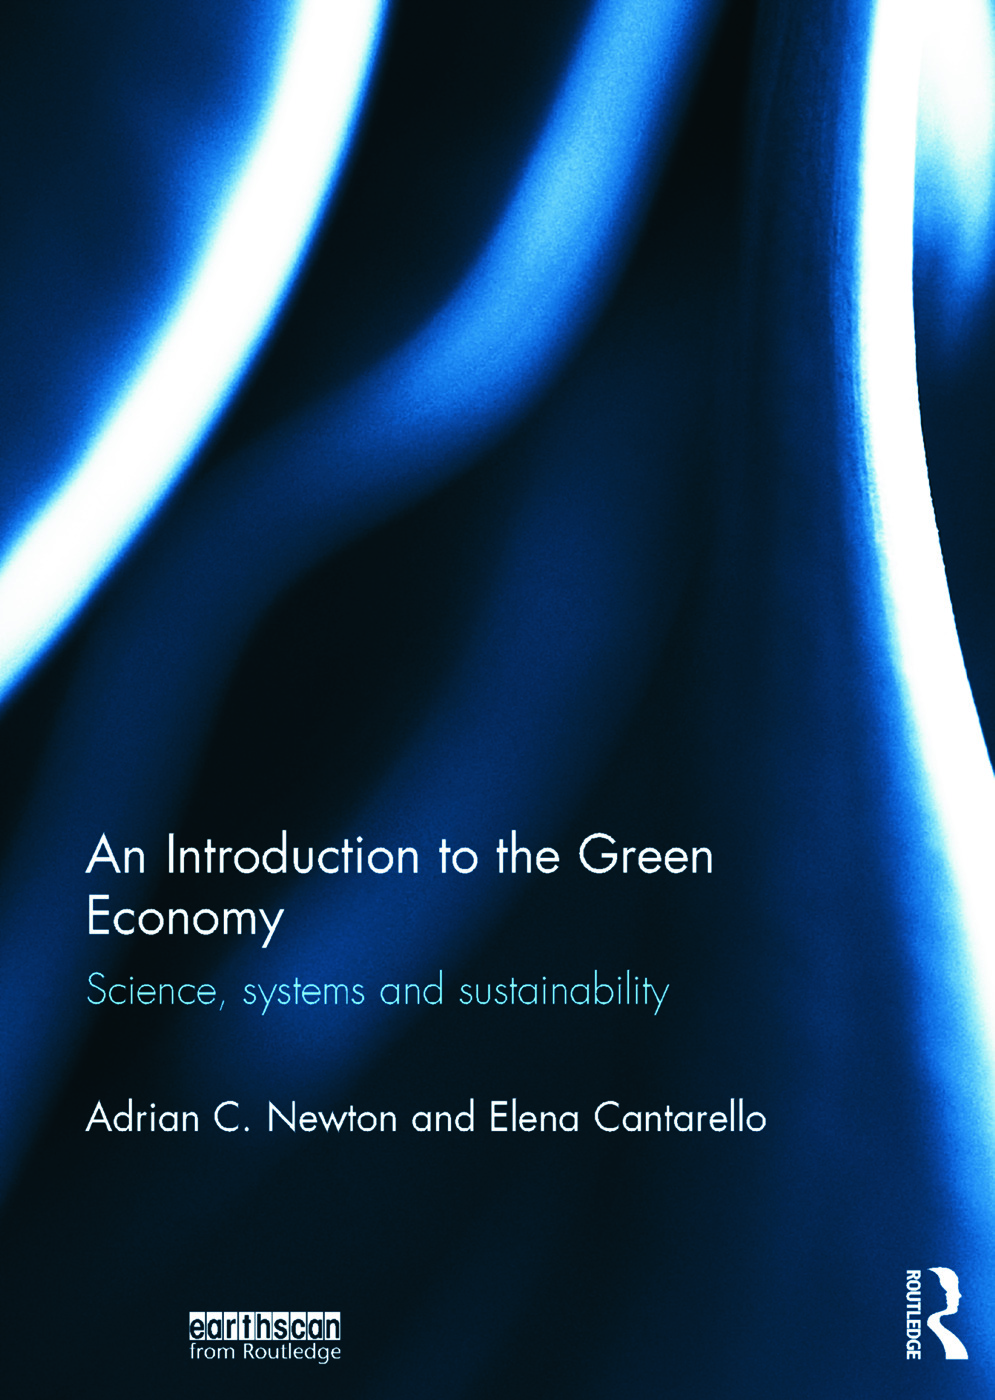 An Introduction to the Green Economy: Science, Systems and Sustainability book cover